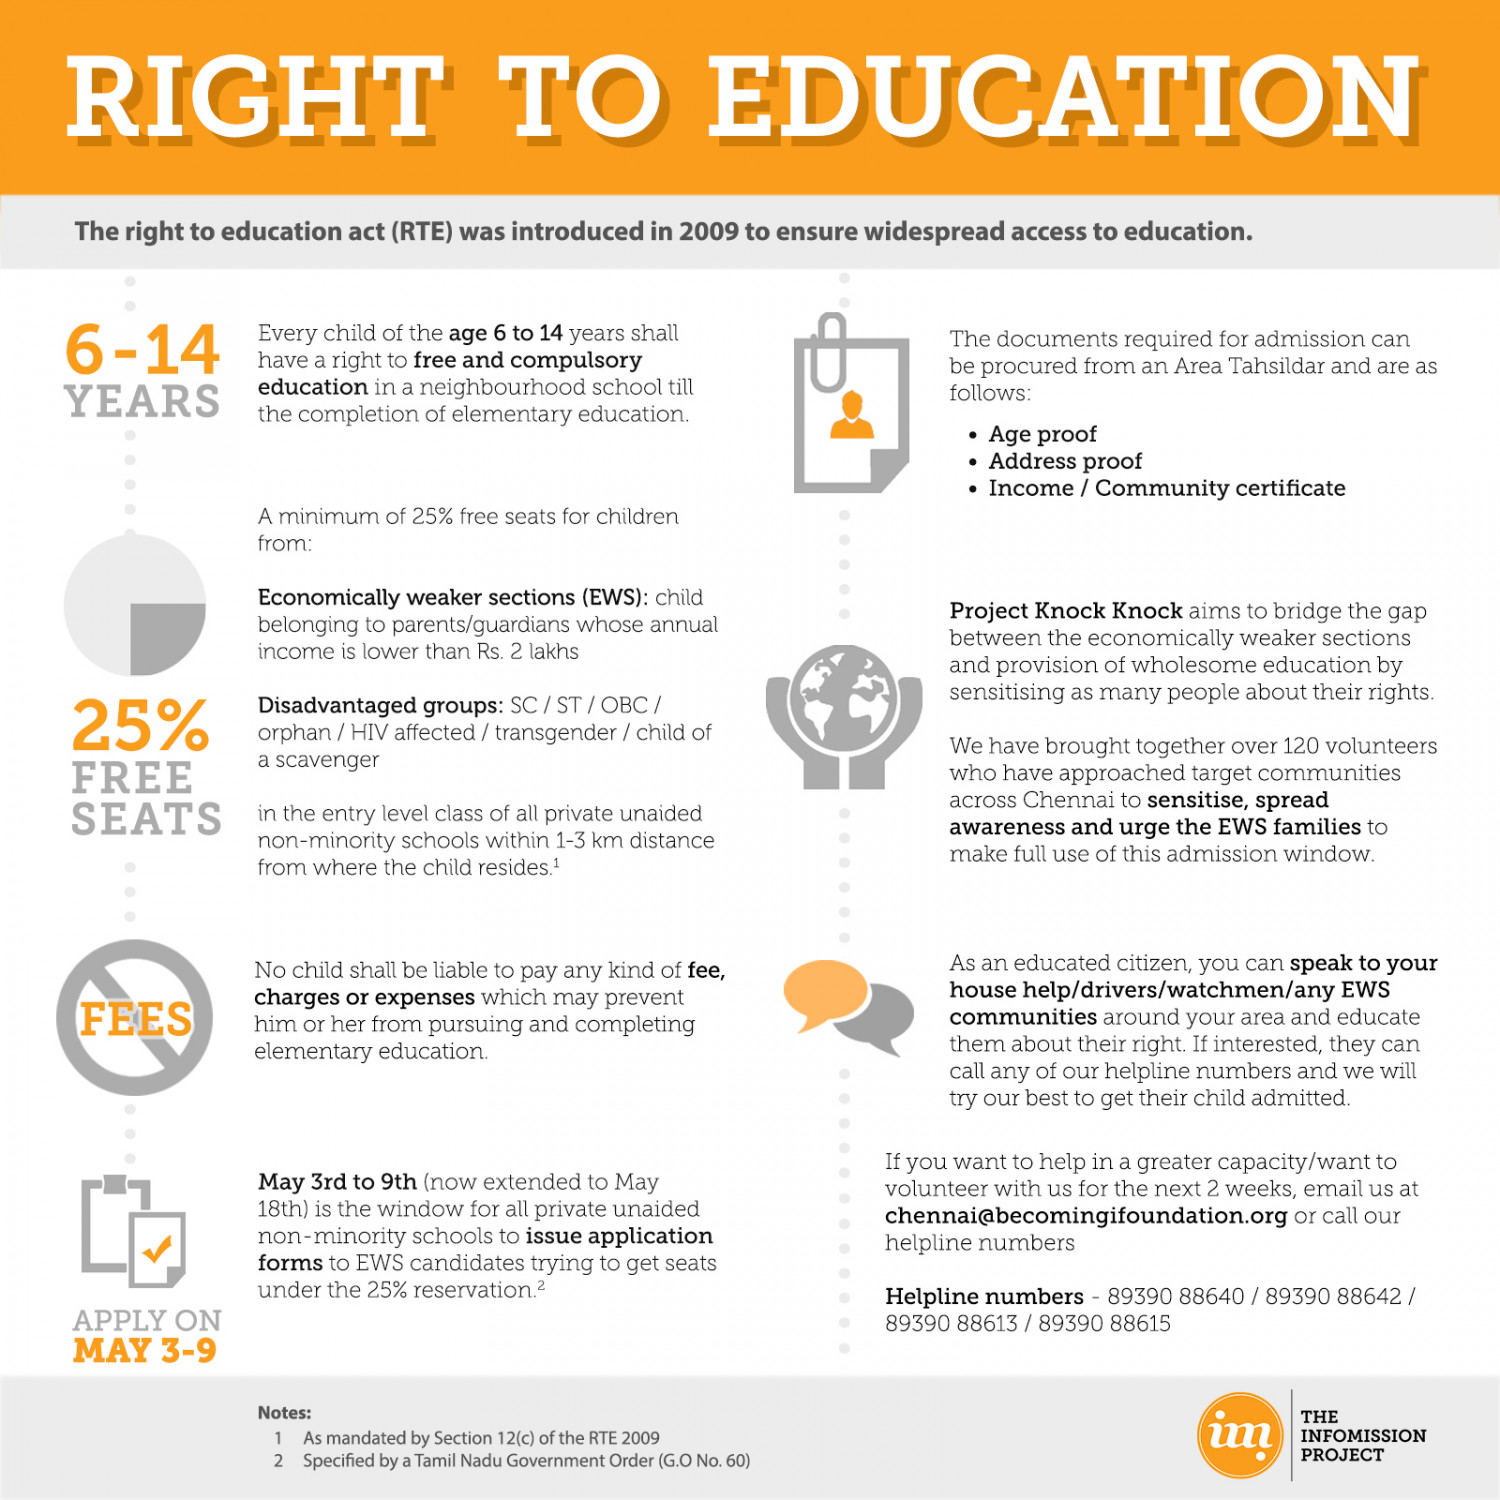 Right to Education Infographic